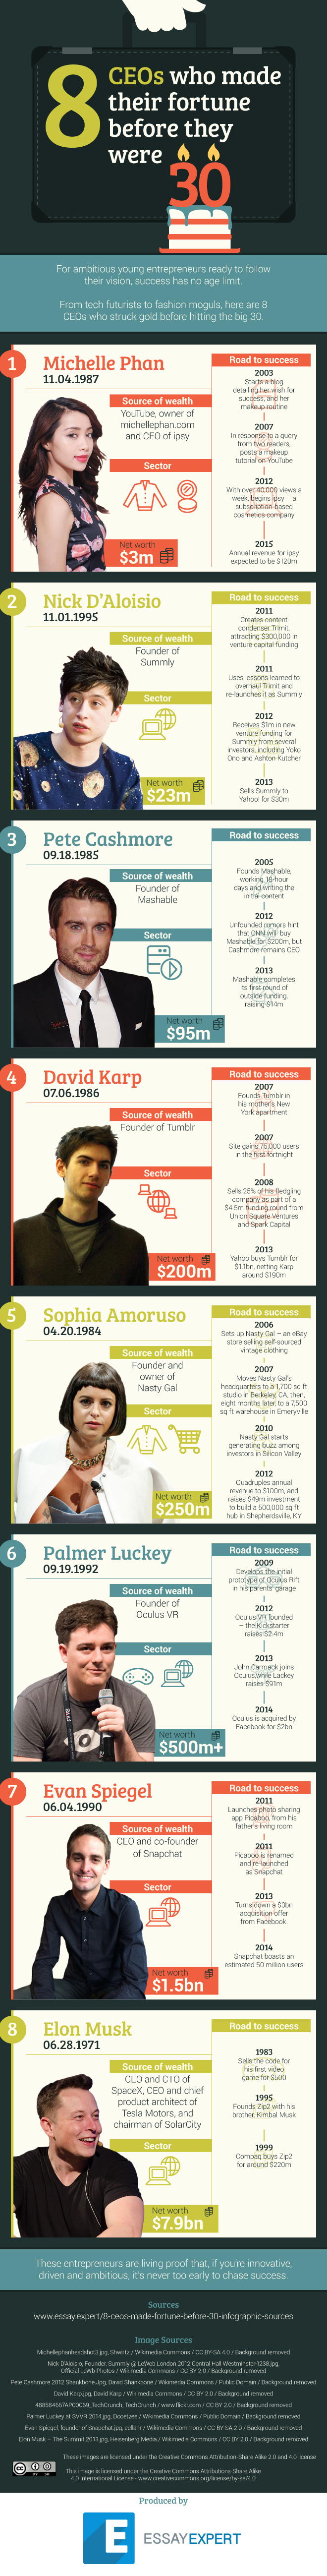 8 CEOs who made their fortune before 30 infographic